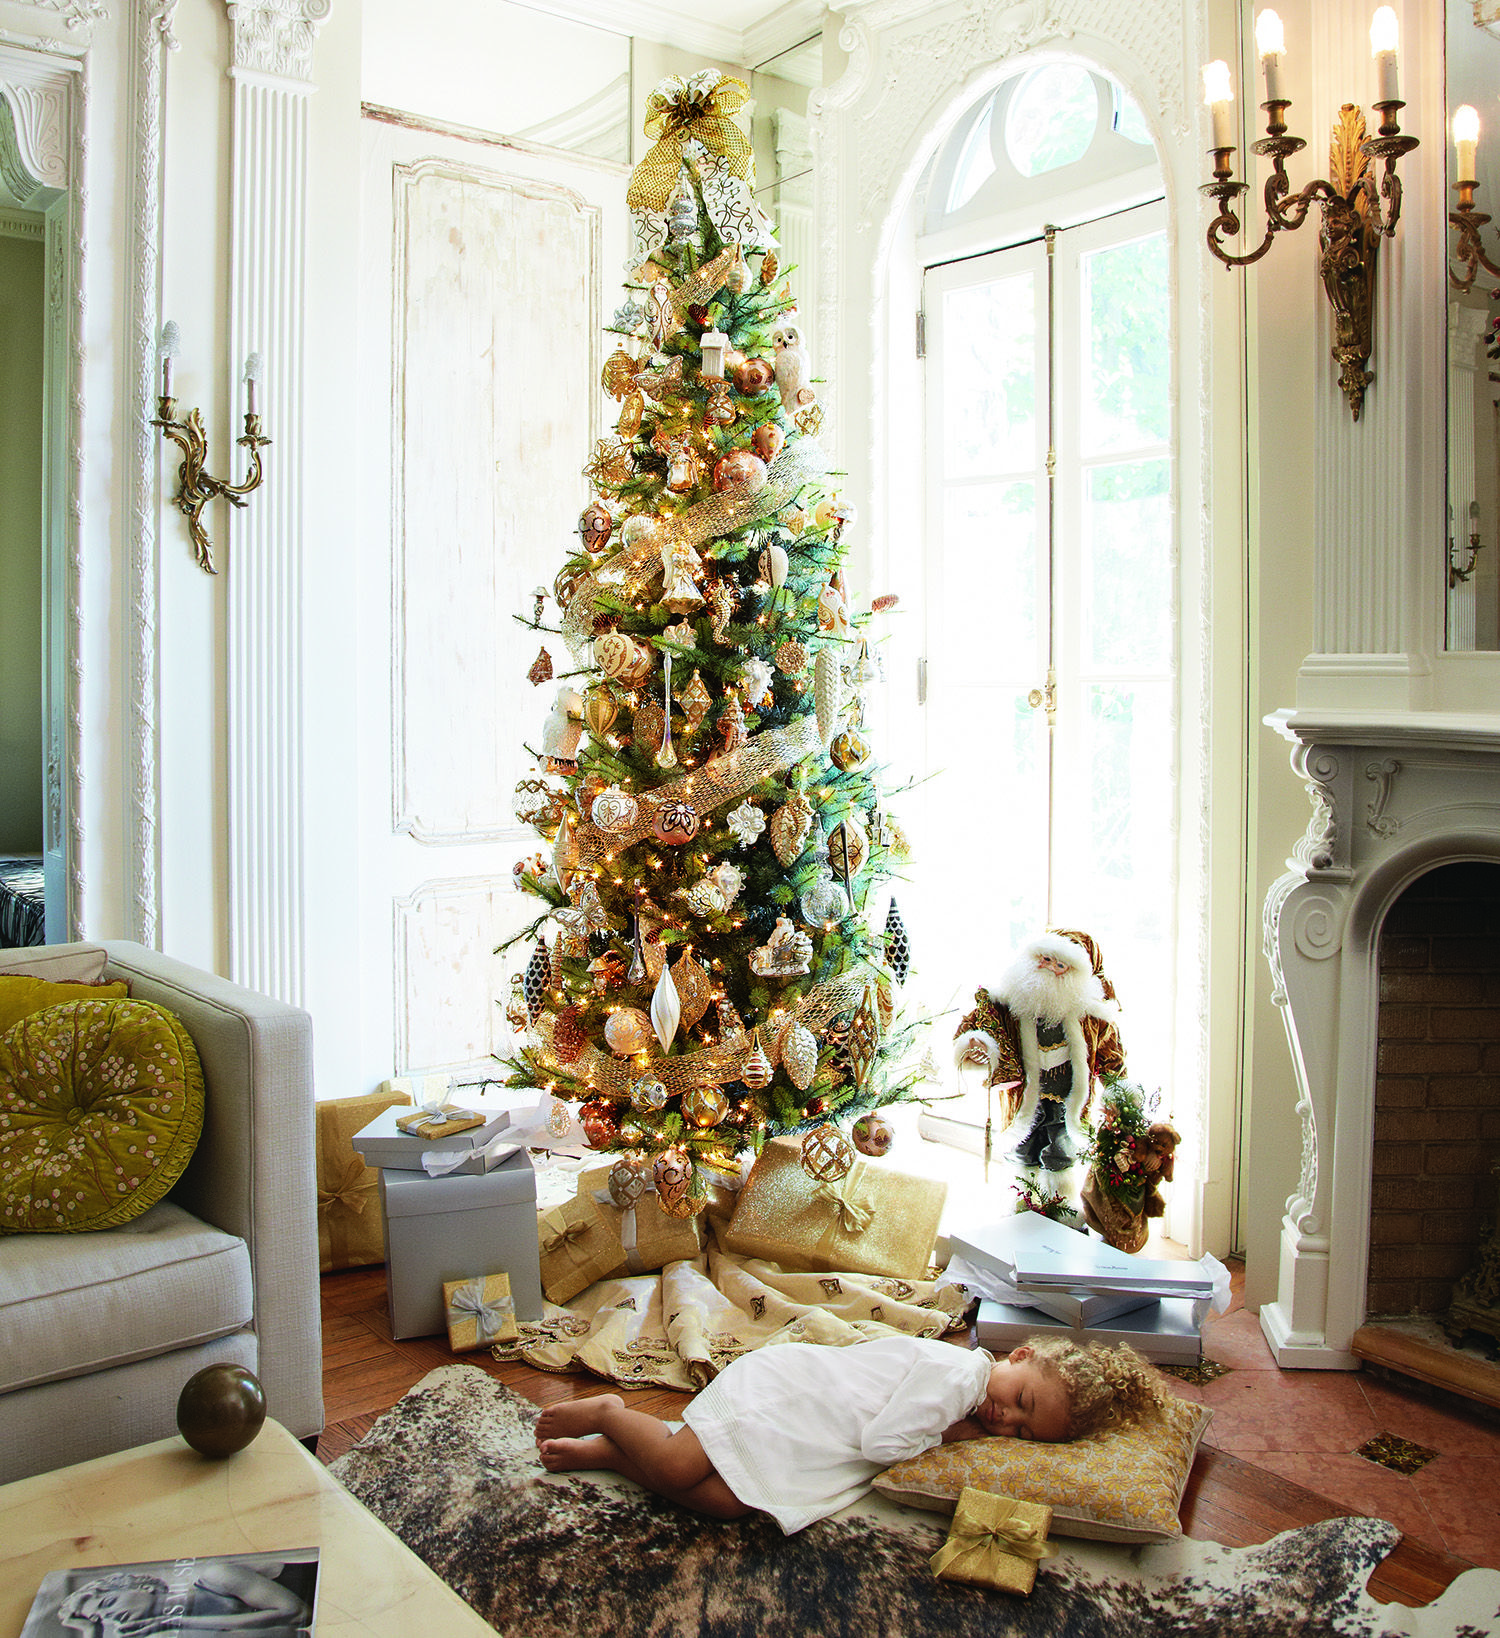 Tall Skinny Christmas Tree Decorating Ideas.Holiday Glories Onlyatnm The Art Of Gifting Slim